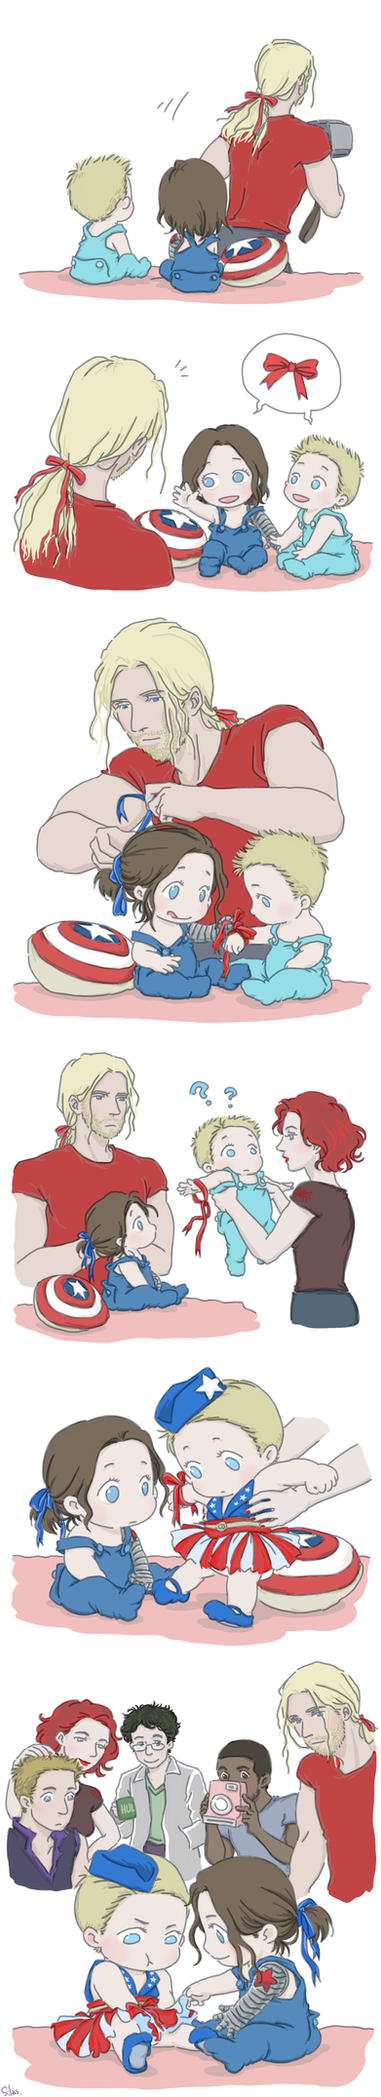 Steve and Bucky babies: Ribbon by SilasSamle